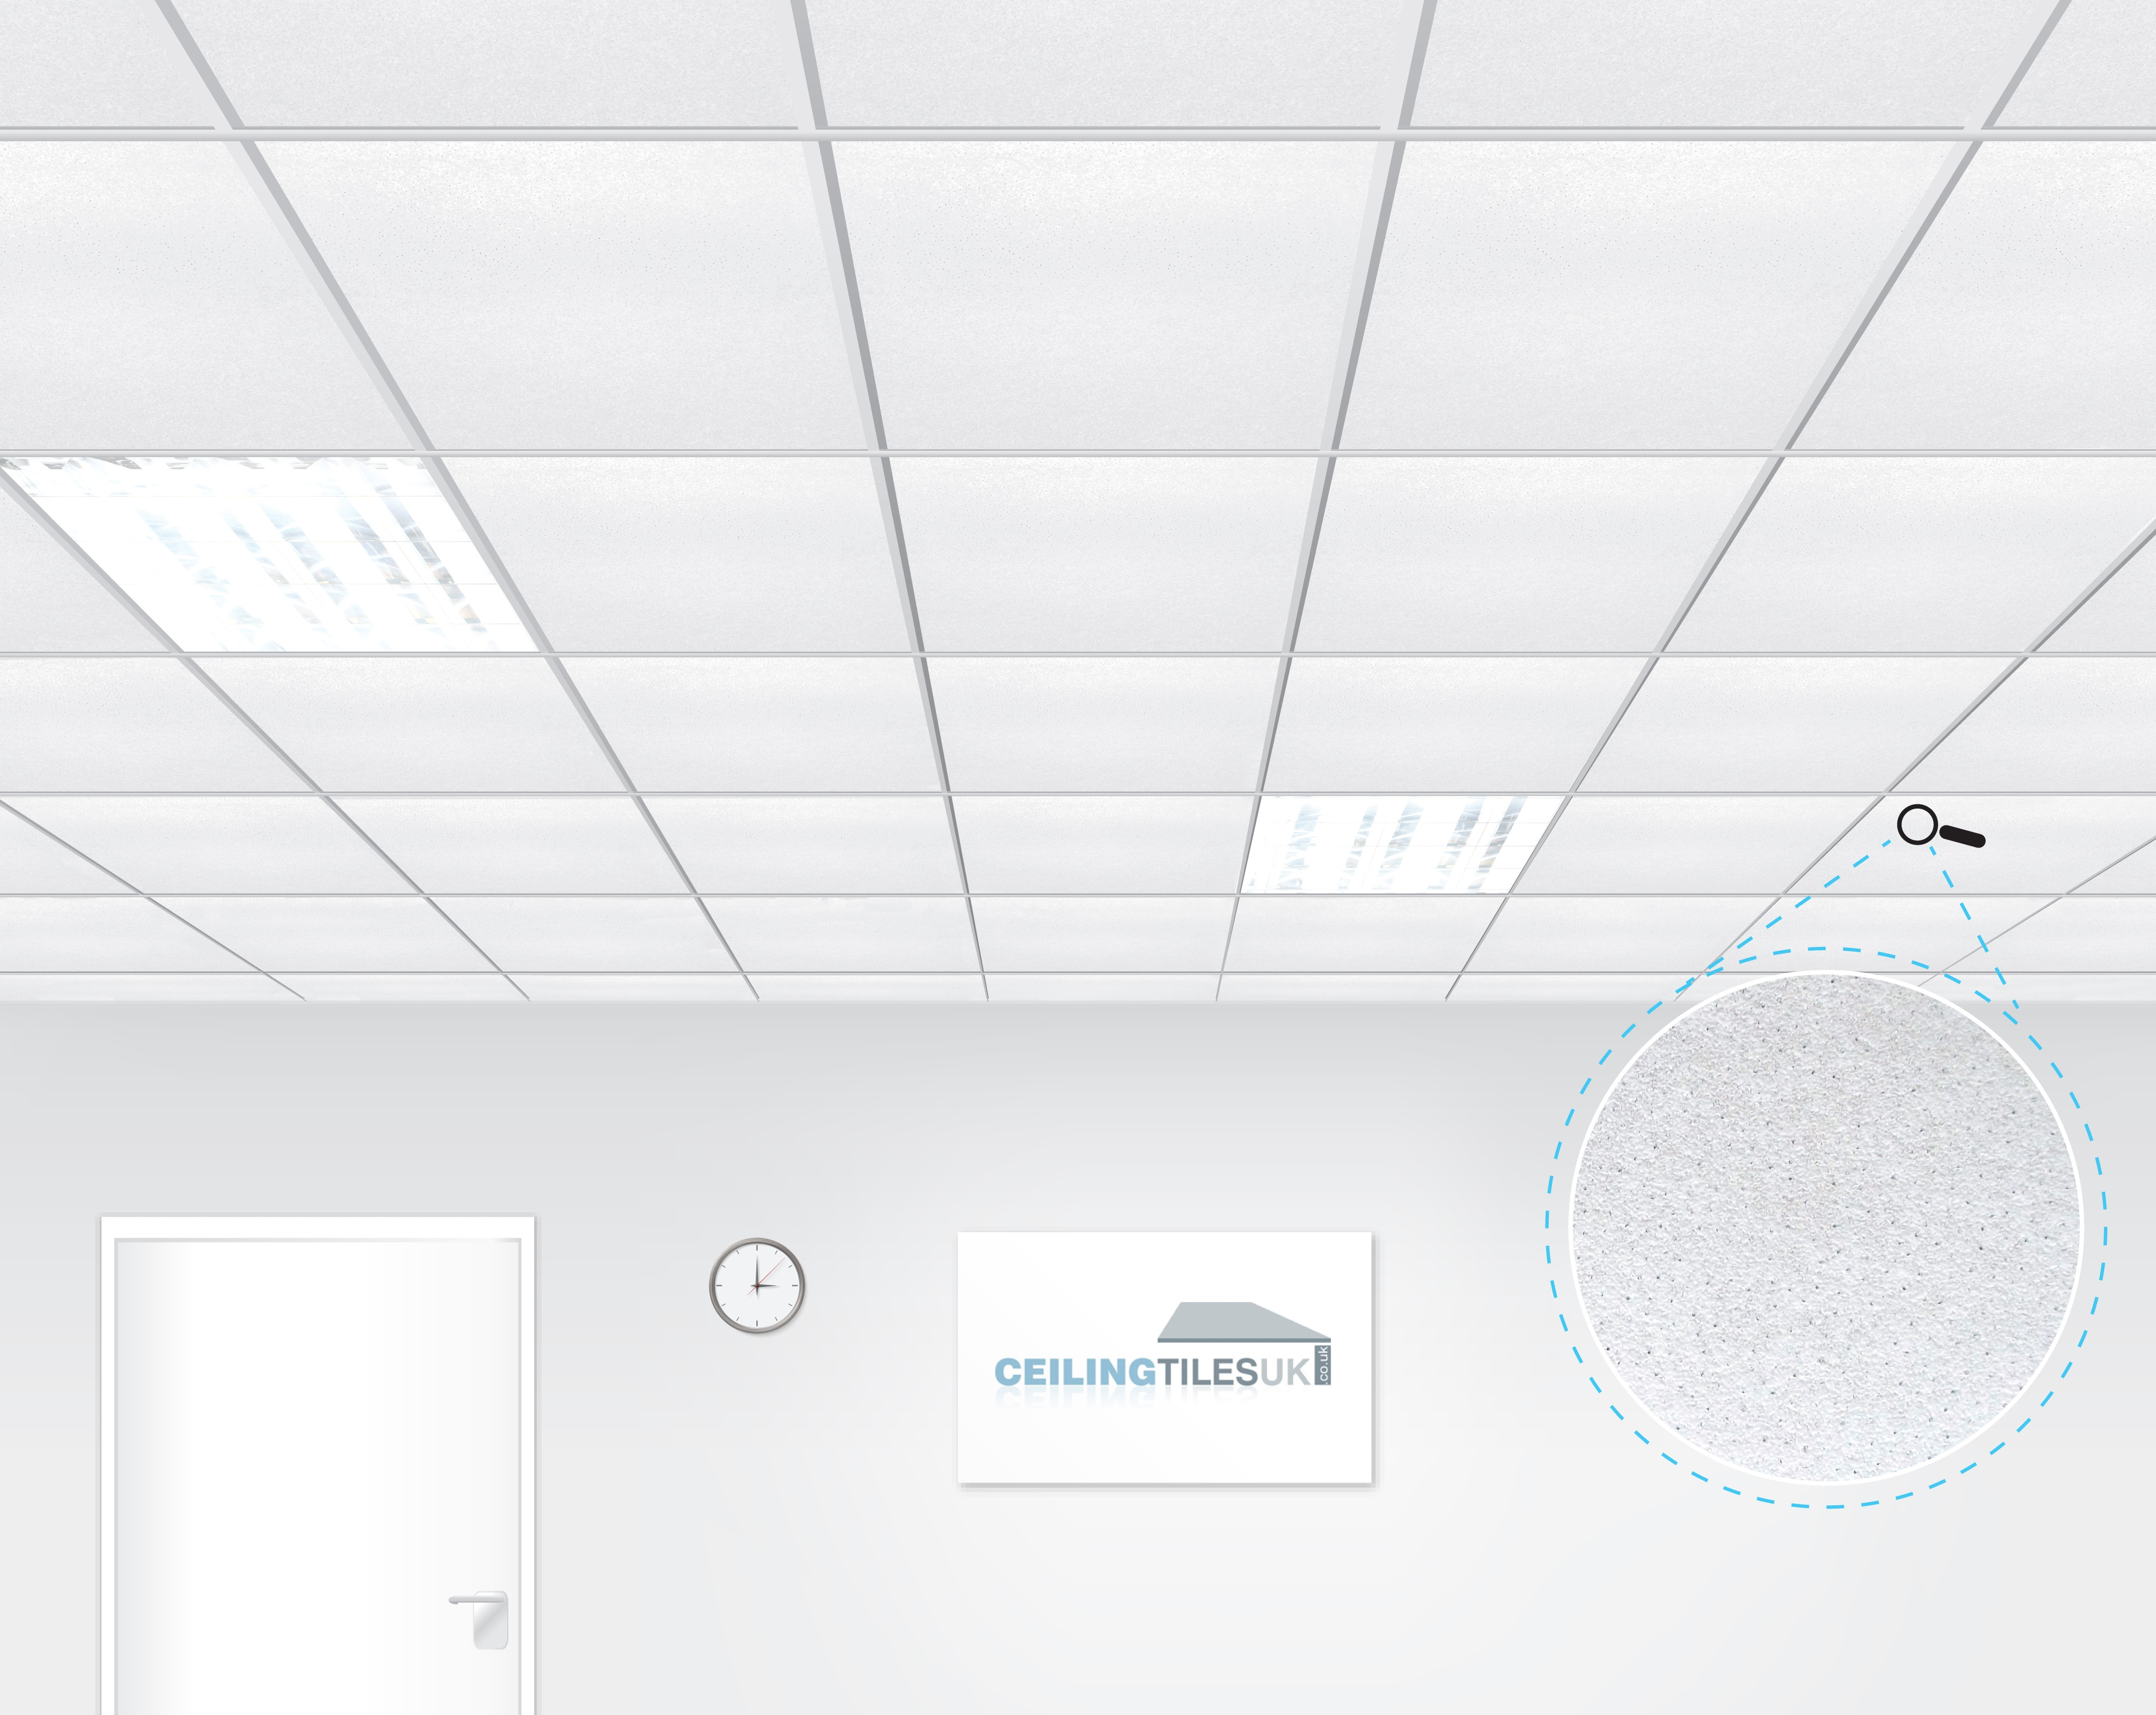 Dune Ceiling Tiles Supremes Dune Ceiling Tiles Supremes armstrong dune supreme perf 600x600mm microlook suspended ceiling 3988 X 3173